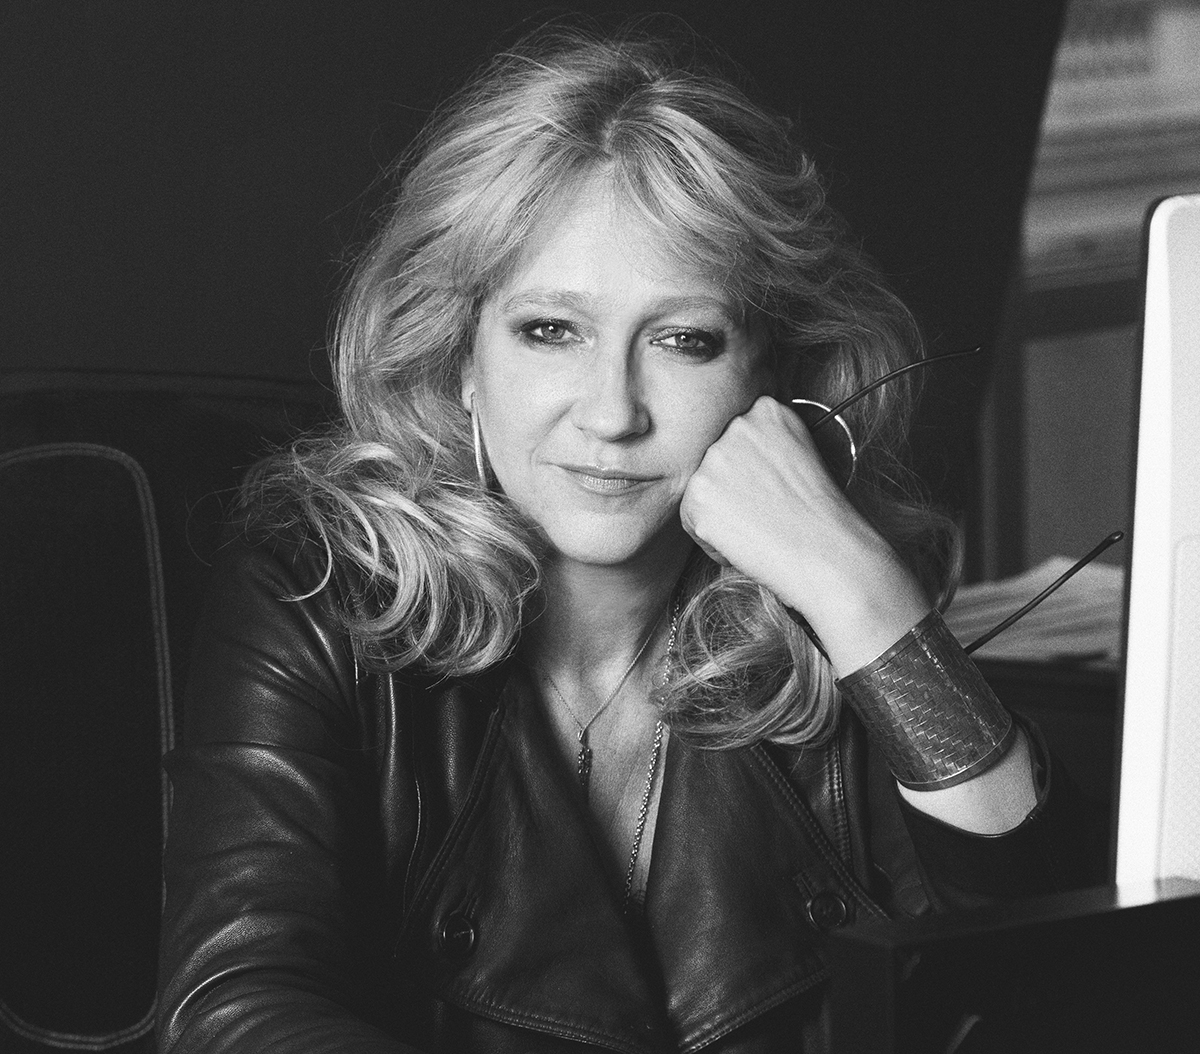 Sonia Friedman named in TIME's 2018 list of the 100 Most Influential People in the World